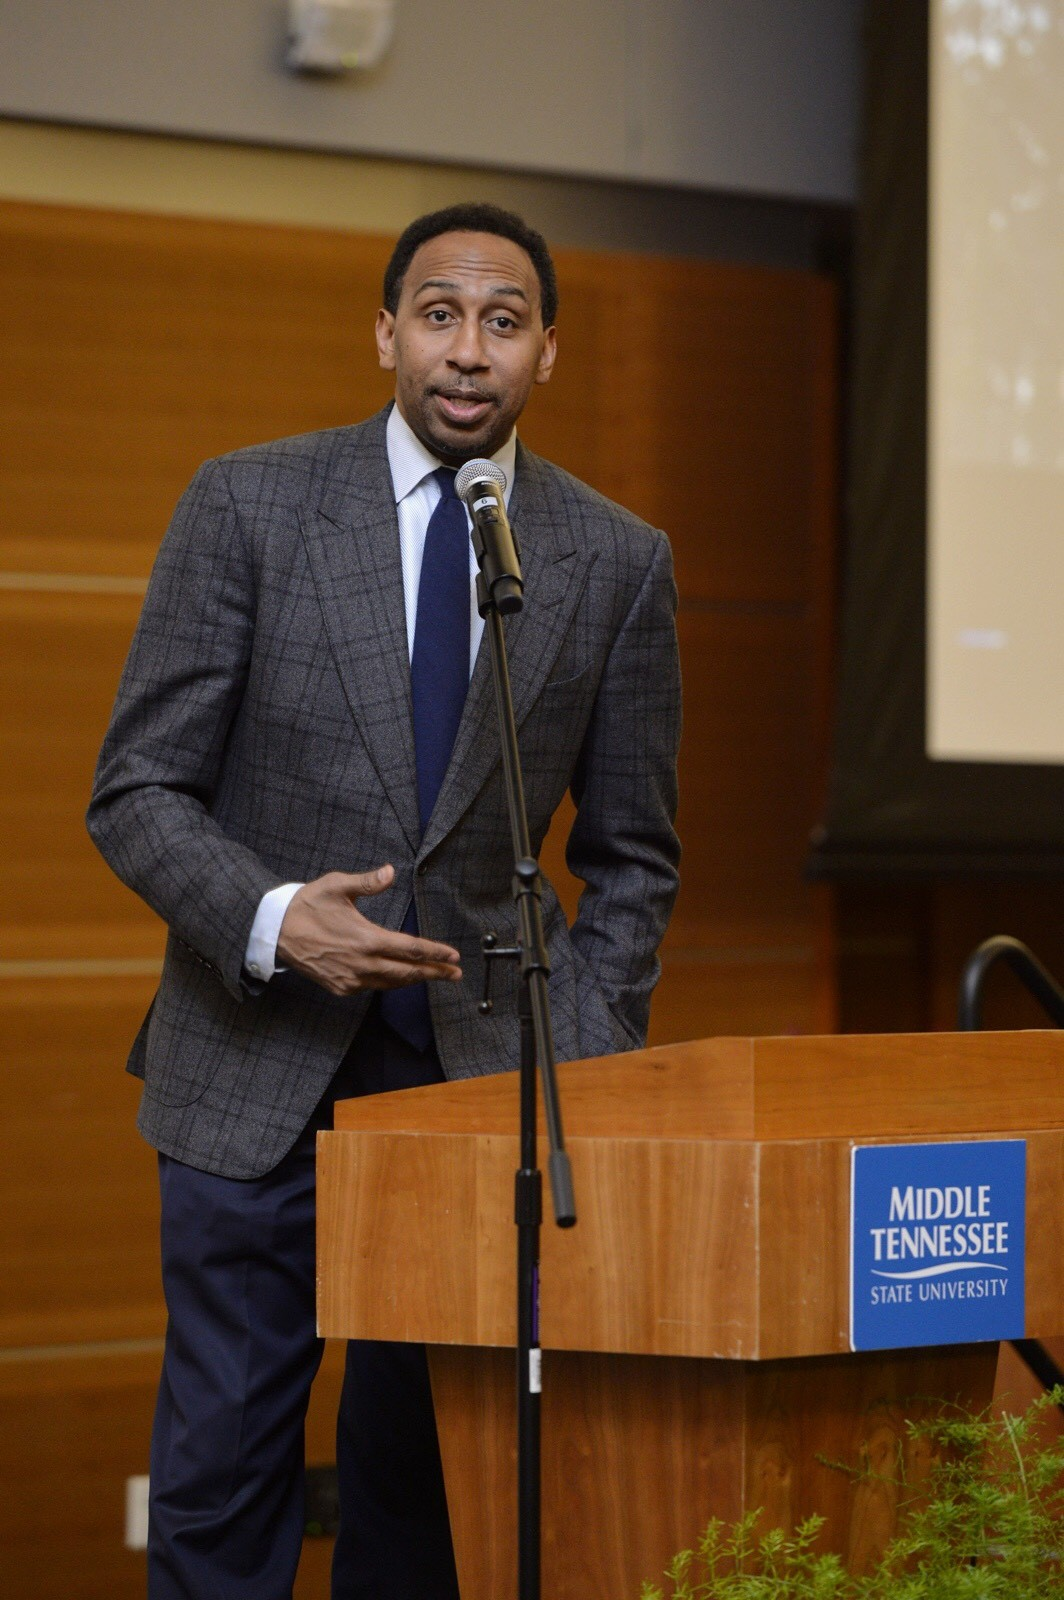 Smith tells MTSU audience Black History Month more about the future than past